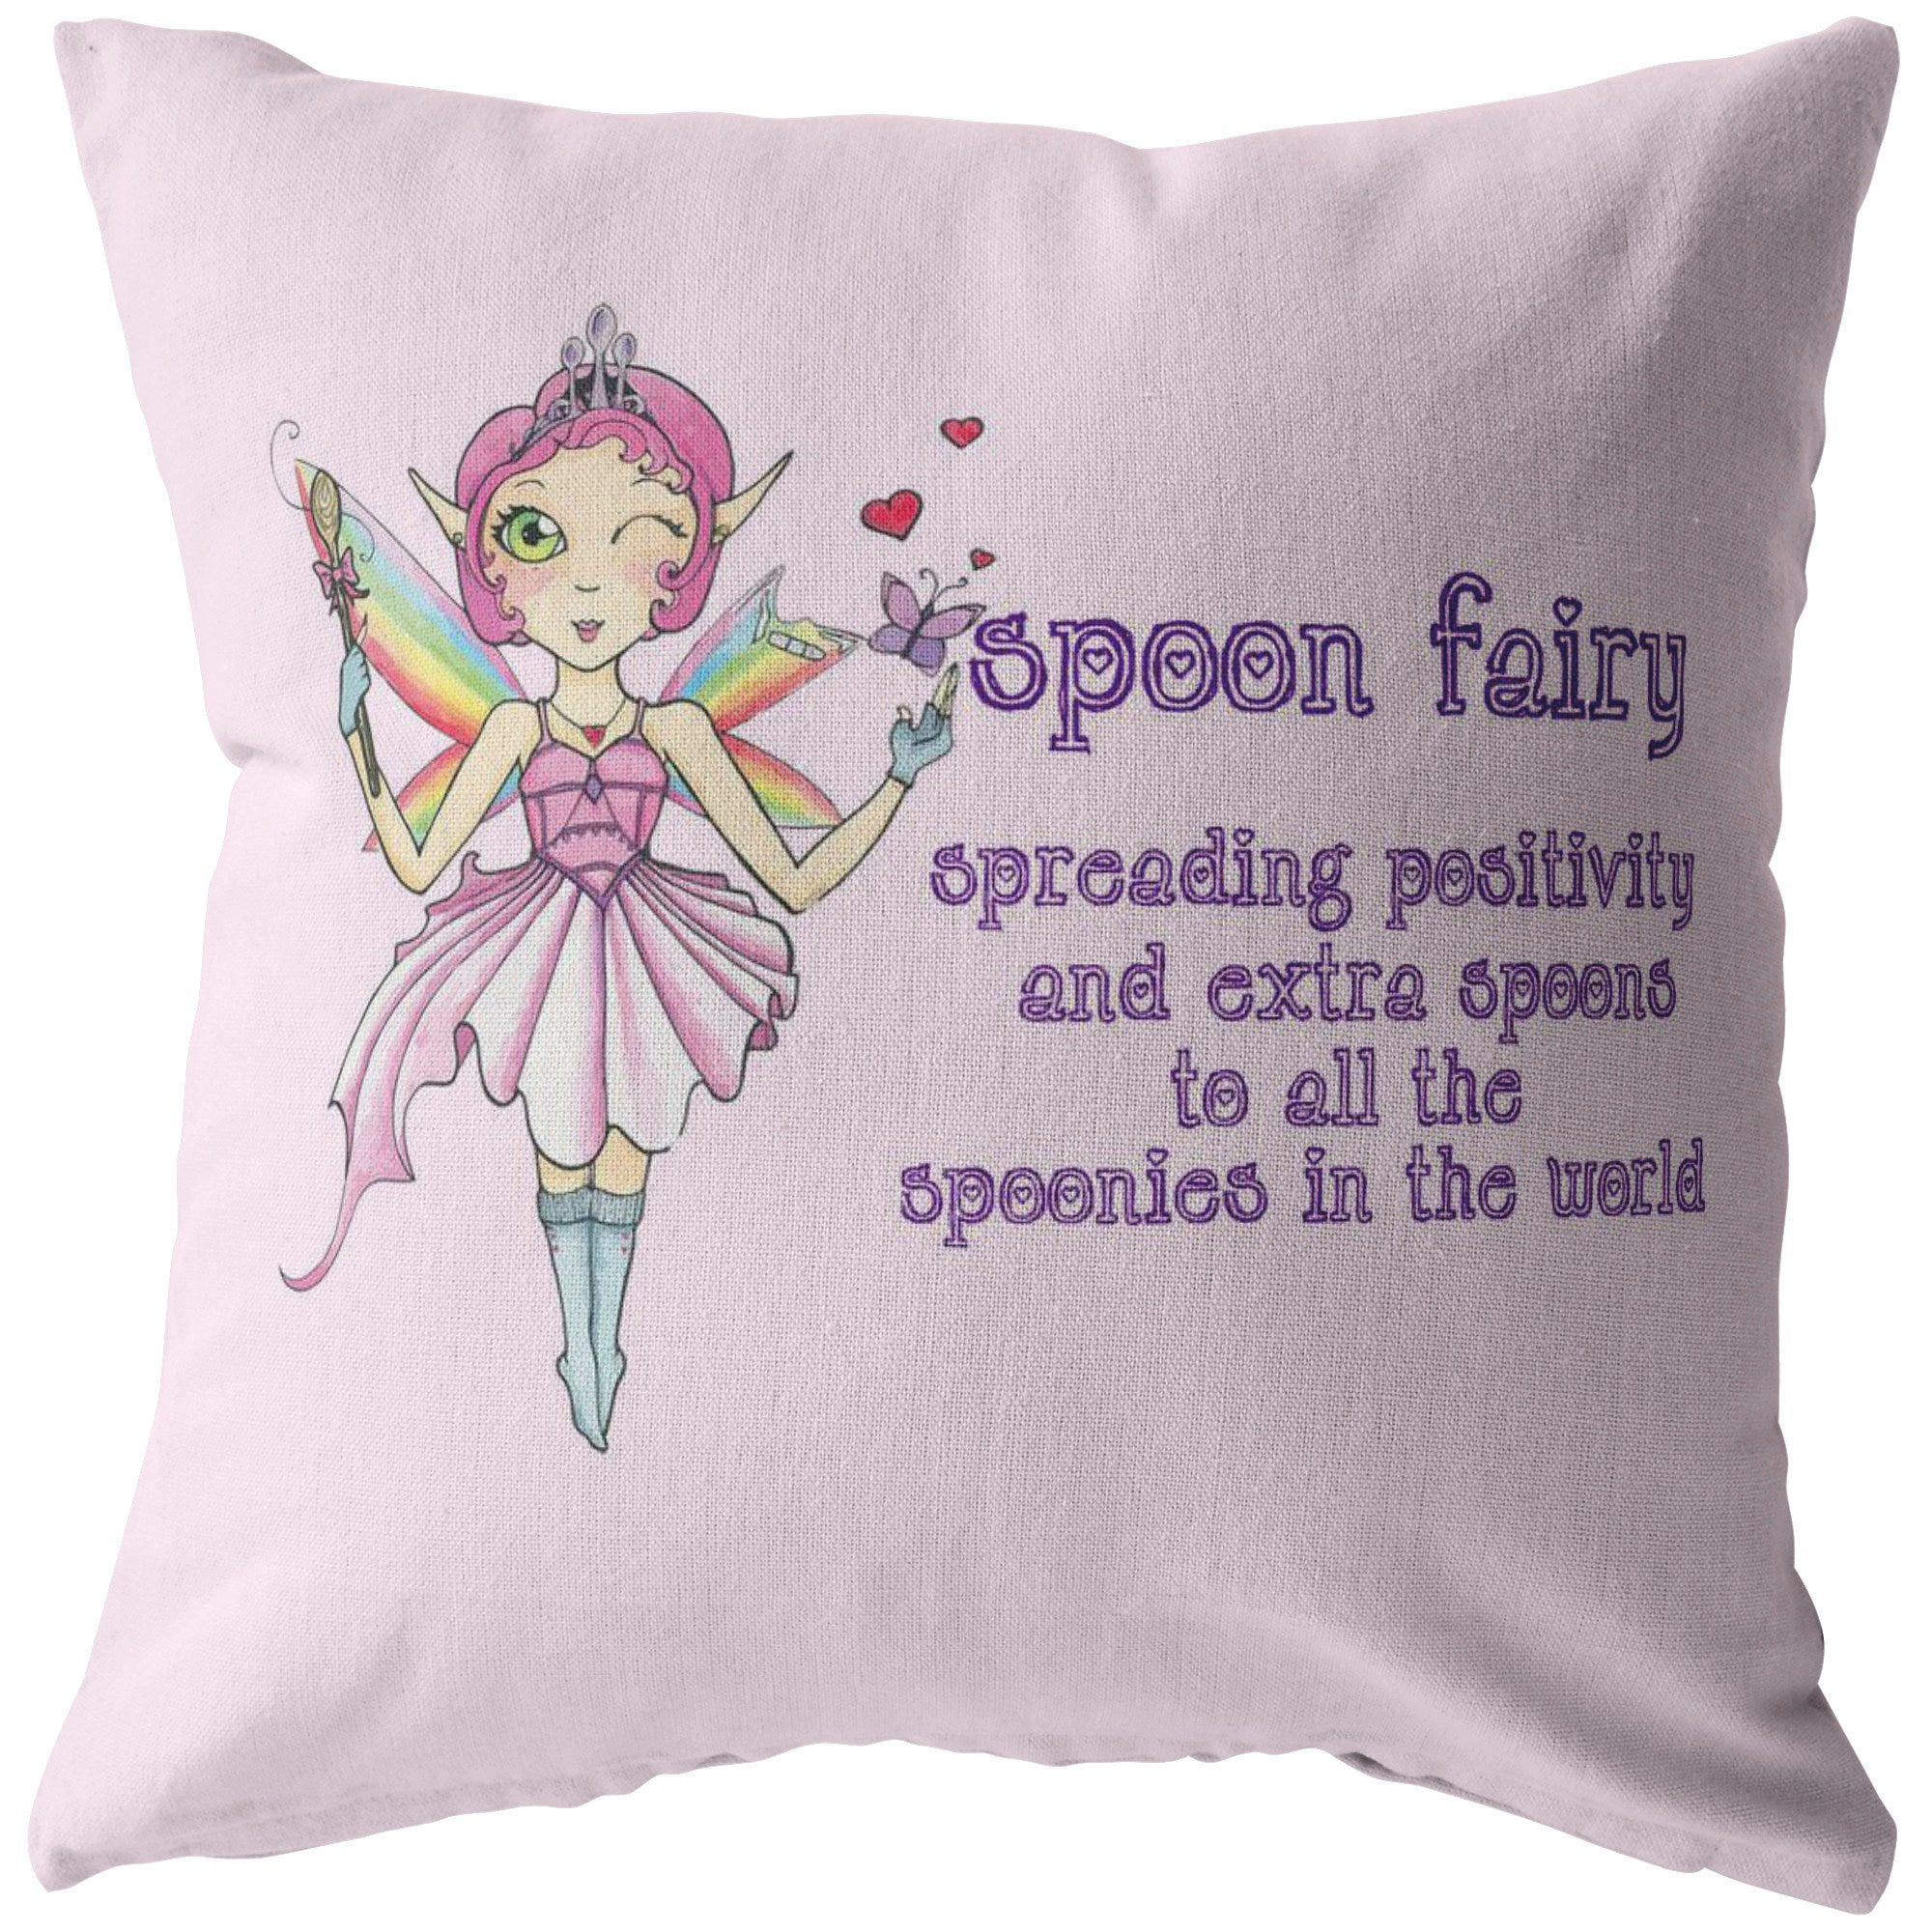 Spoon Fairy With Text Pillow